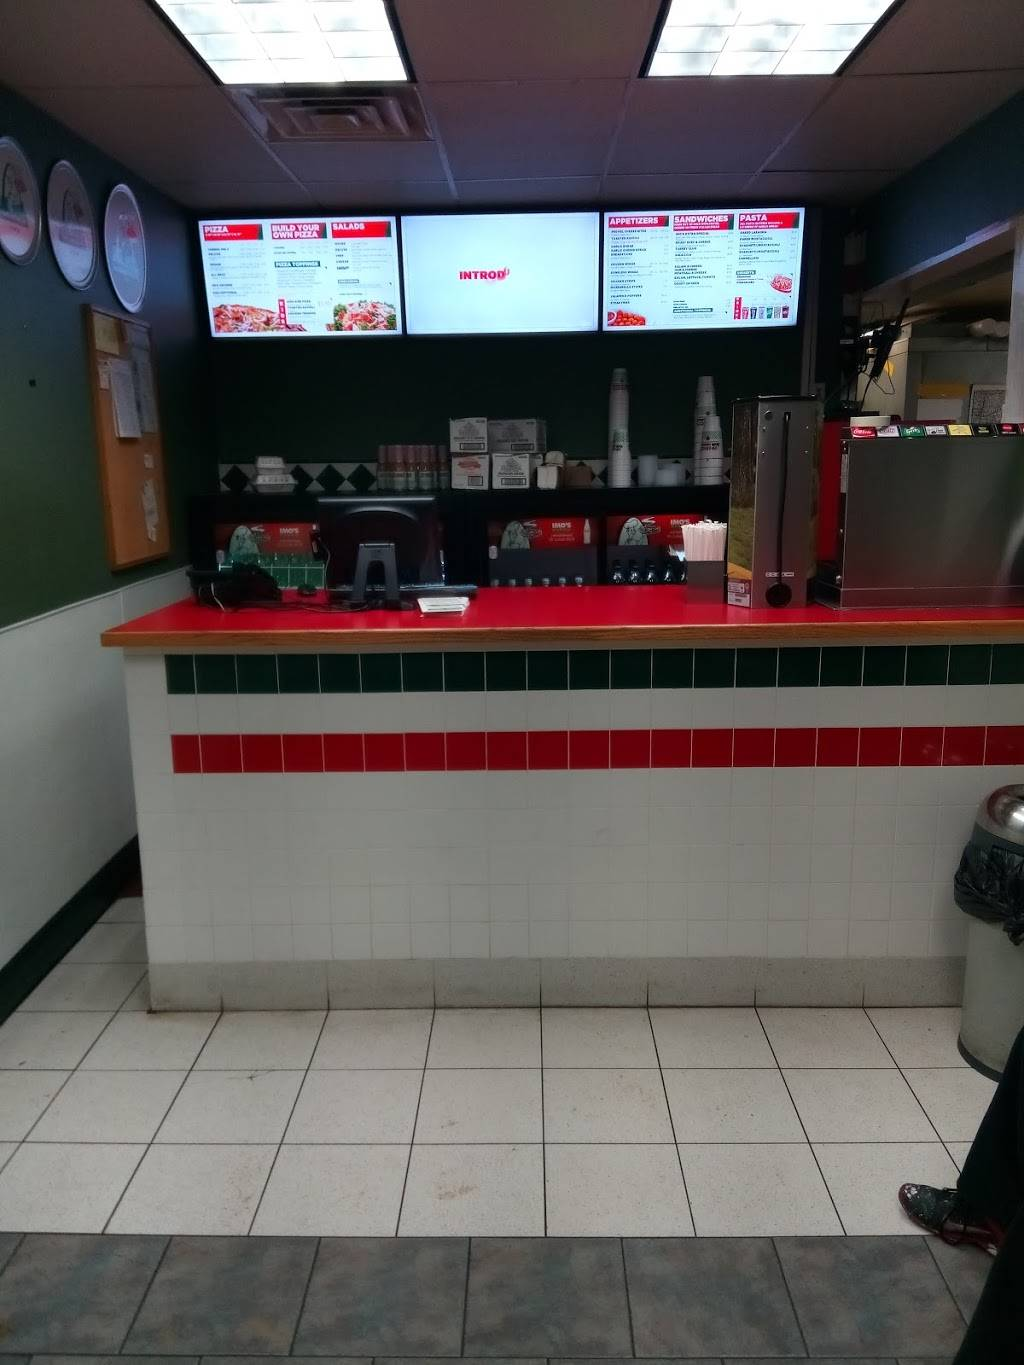 Imos Pizza - meal delivery  | Photo 8 of 10 | Address: 5806 Hampton Ave, St. Louis, MO 63109, USA | Phone: (314) 832-9677